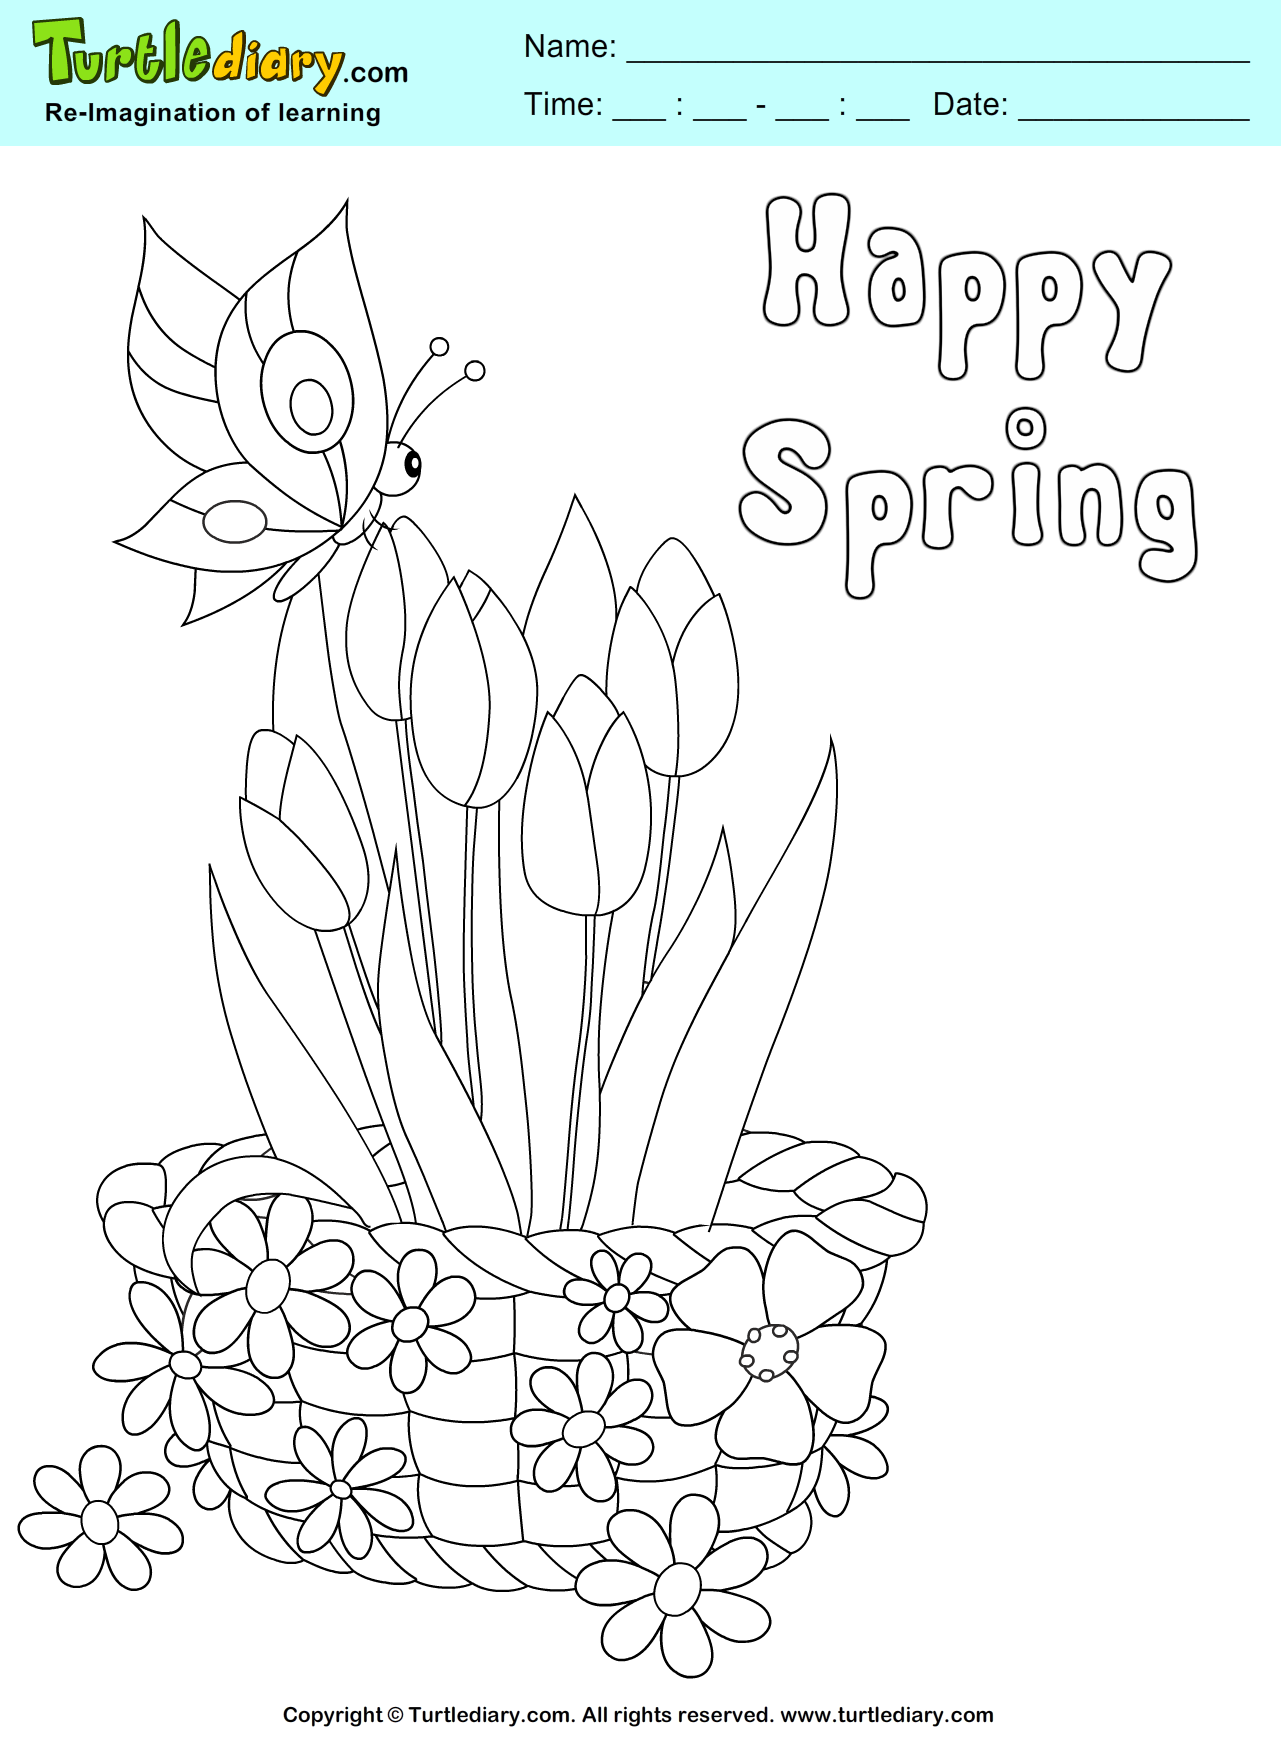 Flower Basket Coloring Sheet Turtle Diary